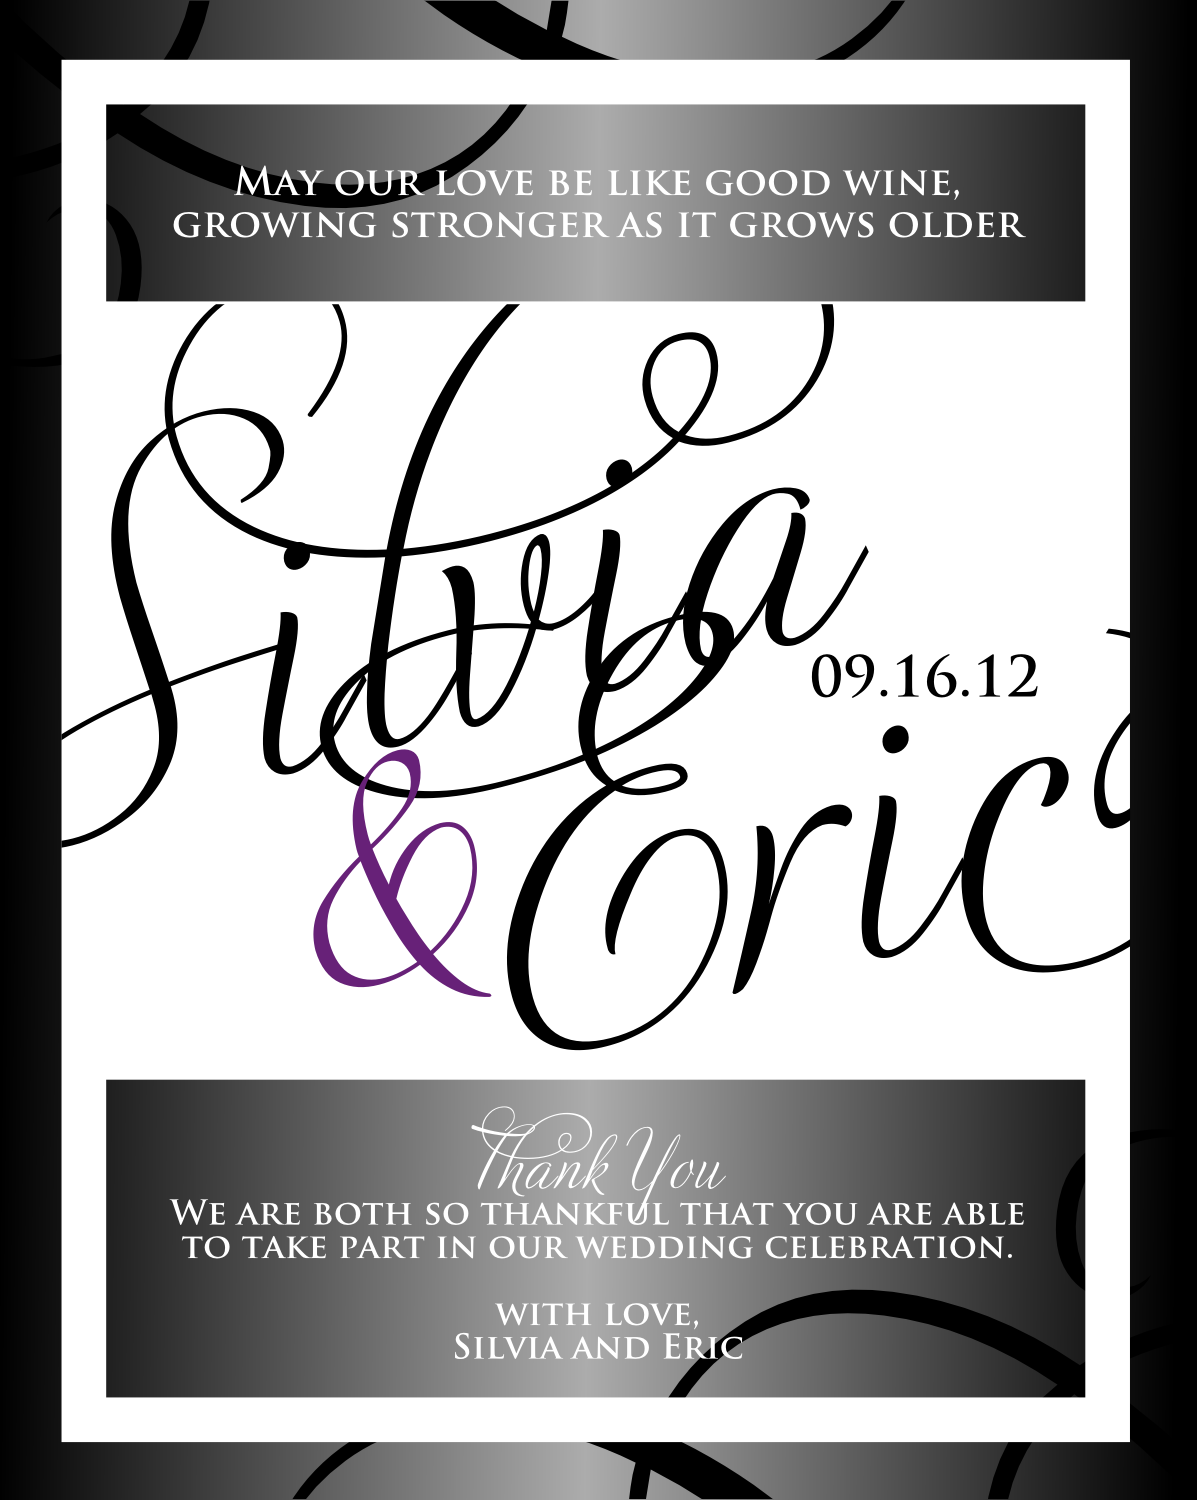 10 images about wedding wine labels free wine bottle label